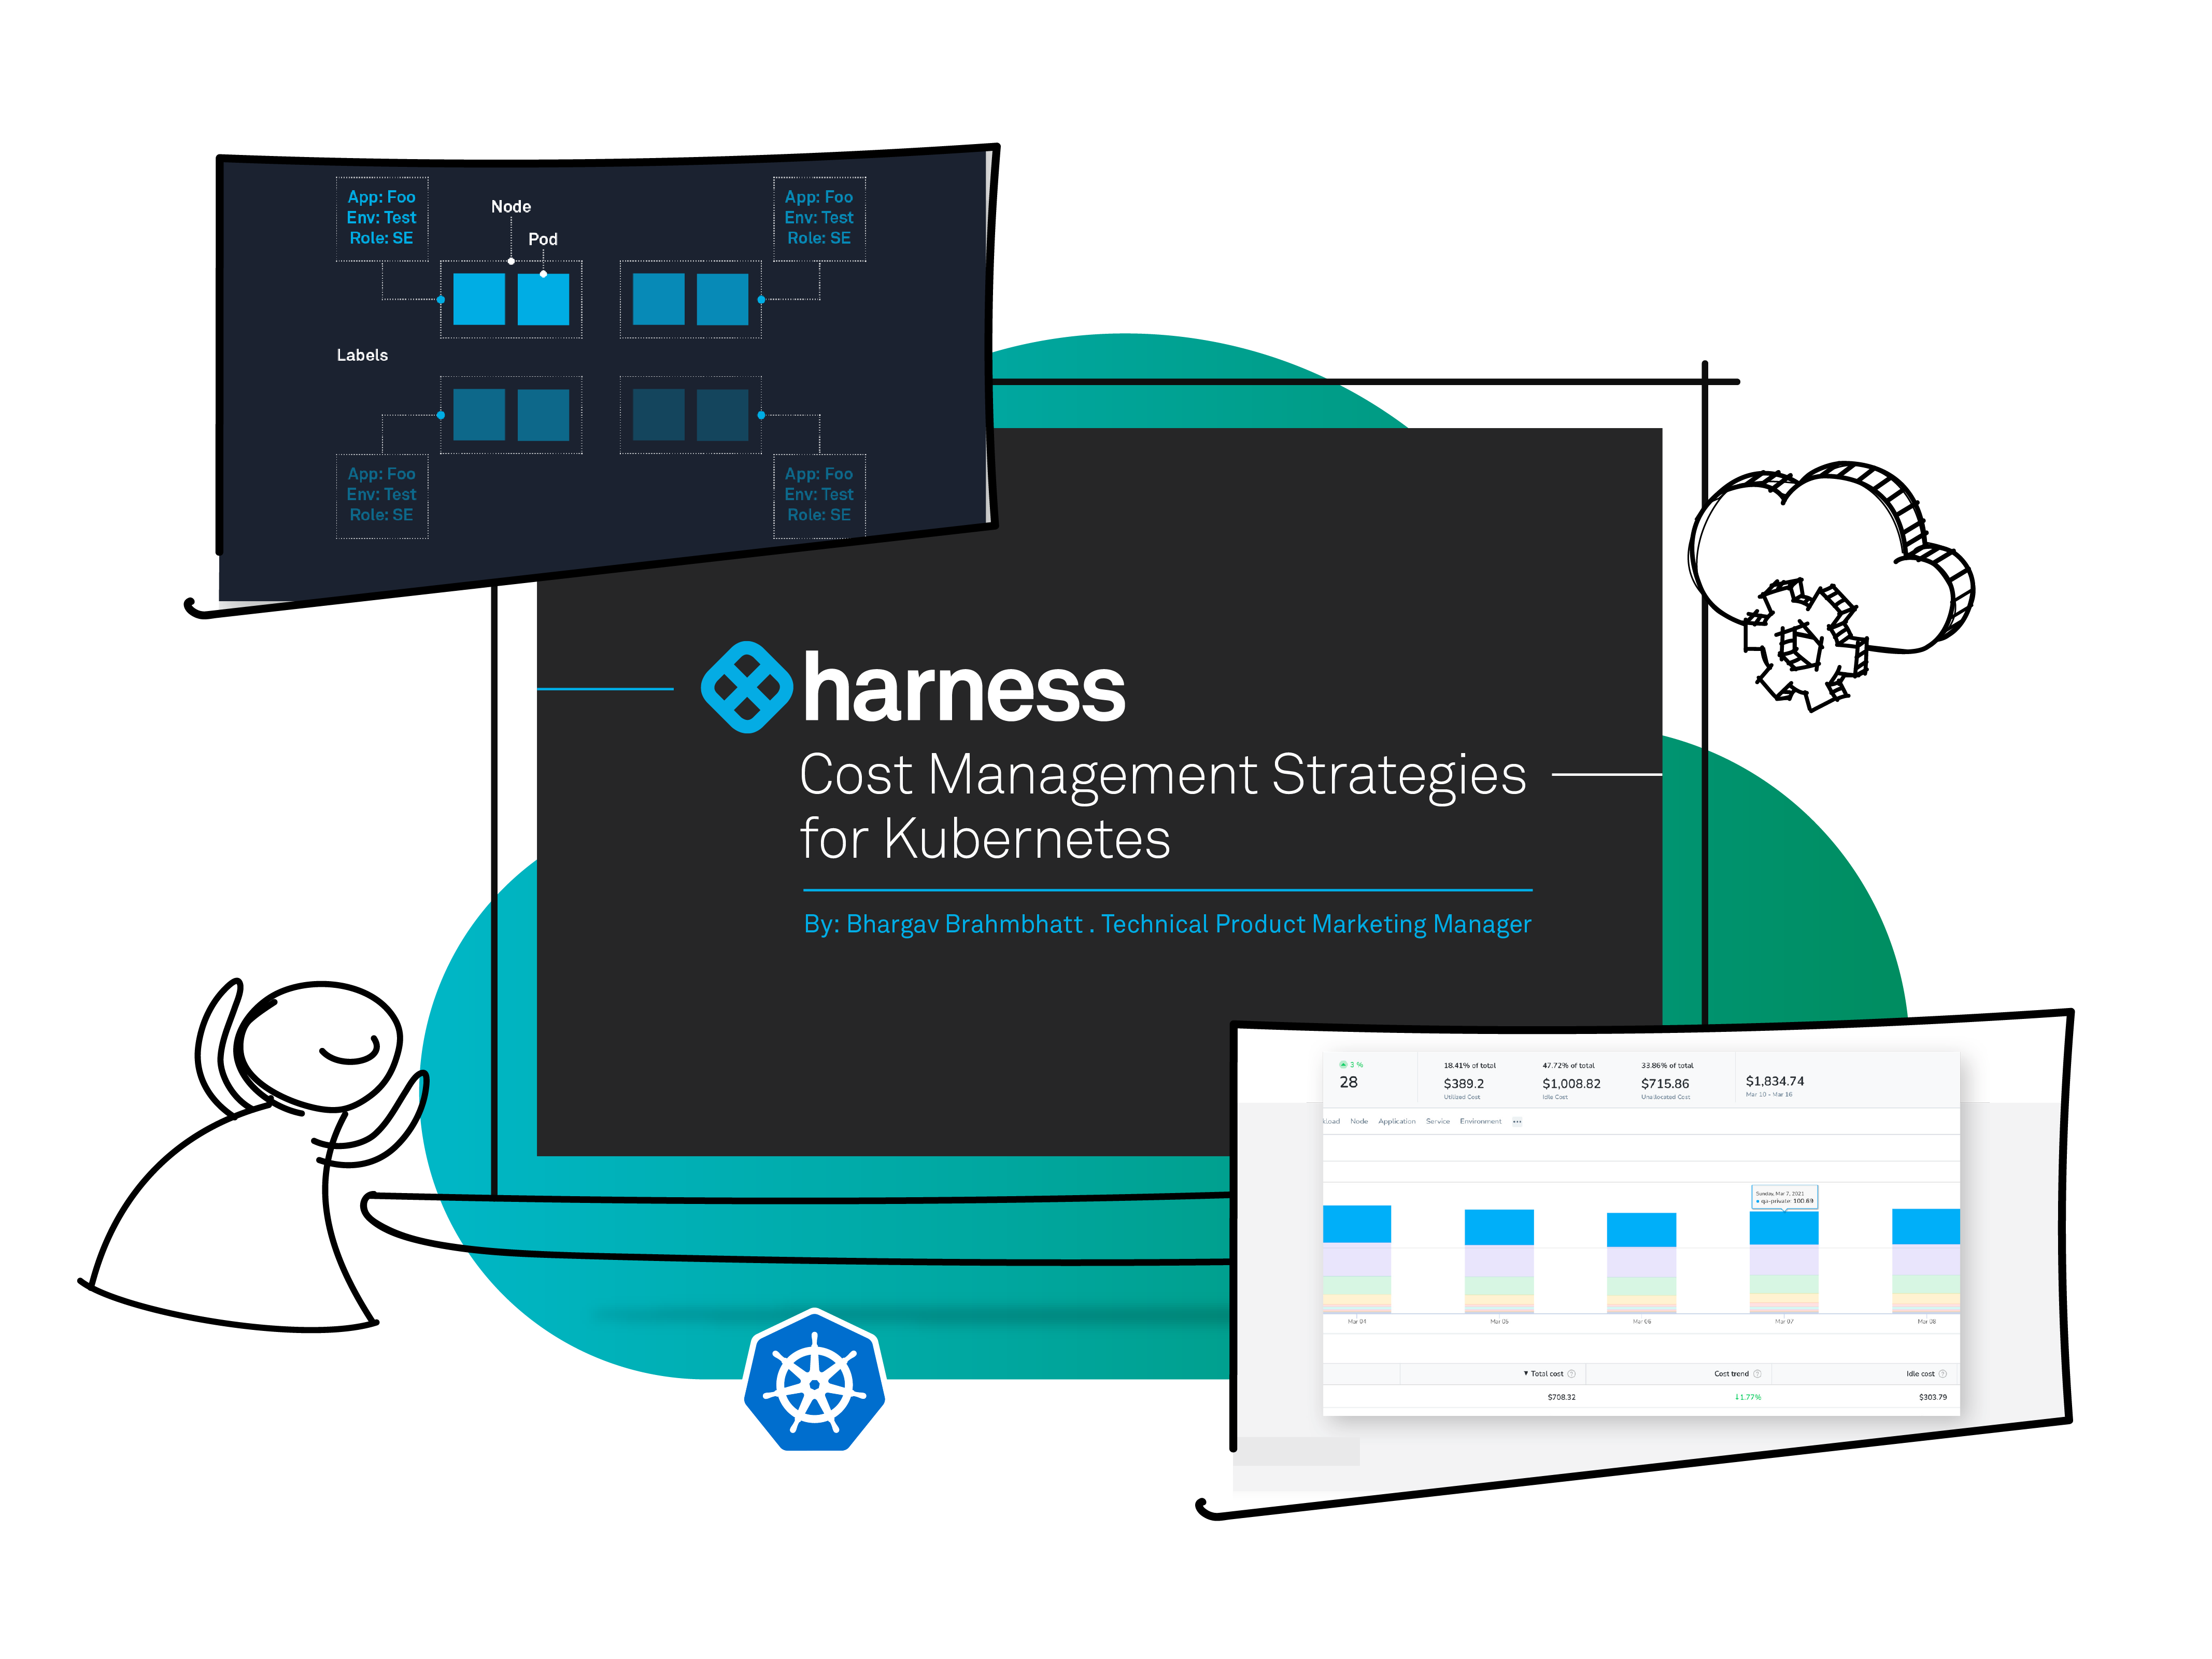 Cost Management Strategies for Kubernetes eBook